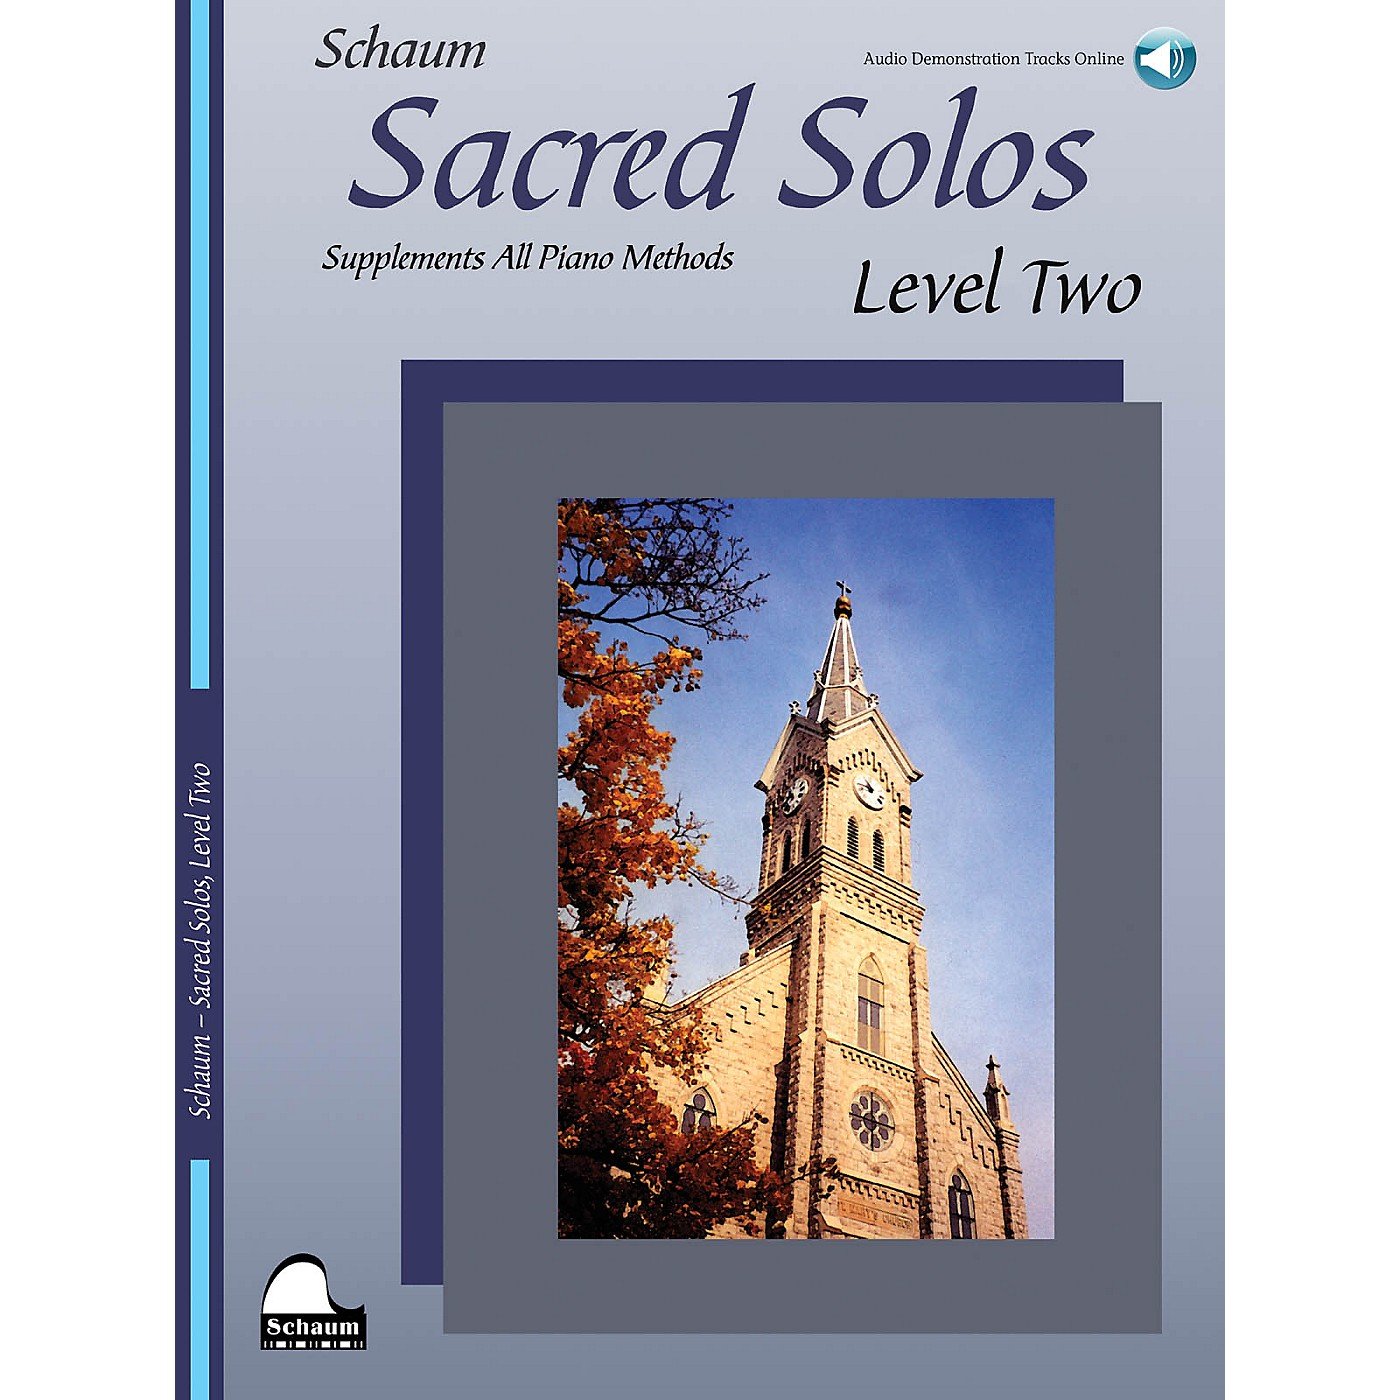 SCHAUM Sacred Solos (Level Two) Educational Piano Book with CD (Level Early Inter) thumbnail